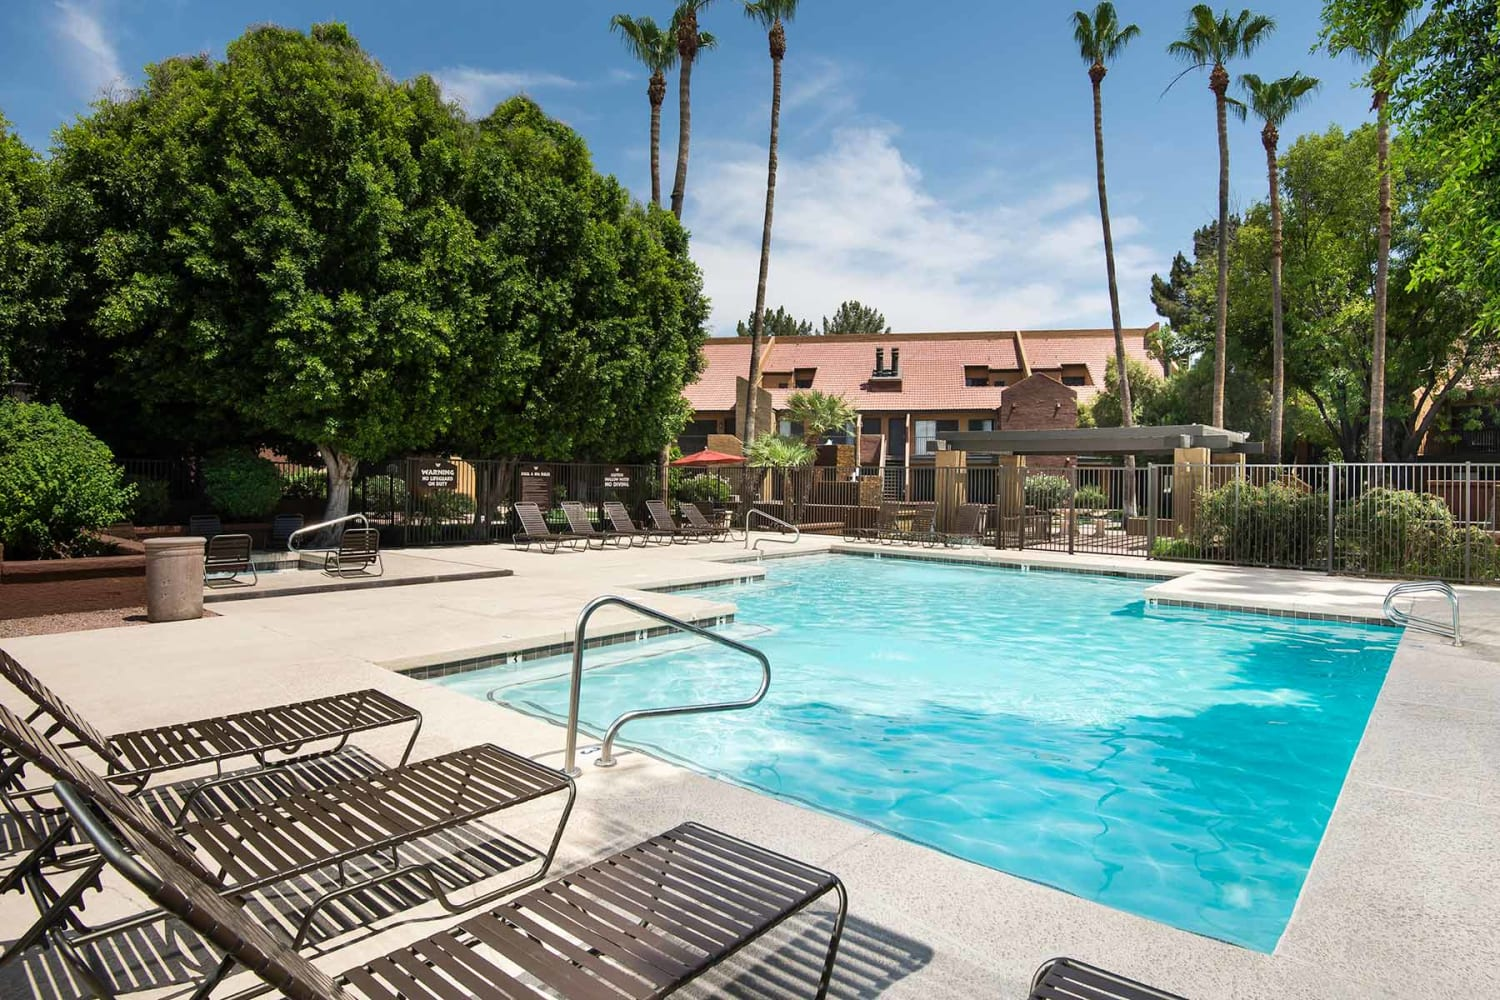 Enjoy apartments with a swimming pool at Waterford Place Apartments in Mesa, Arizona